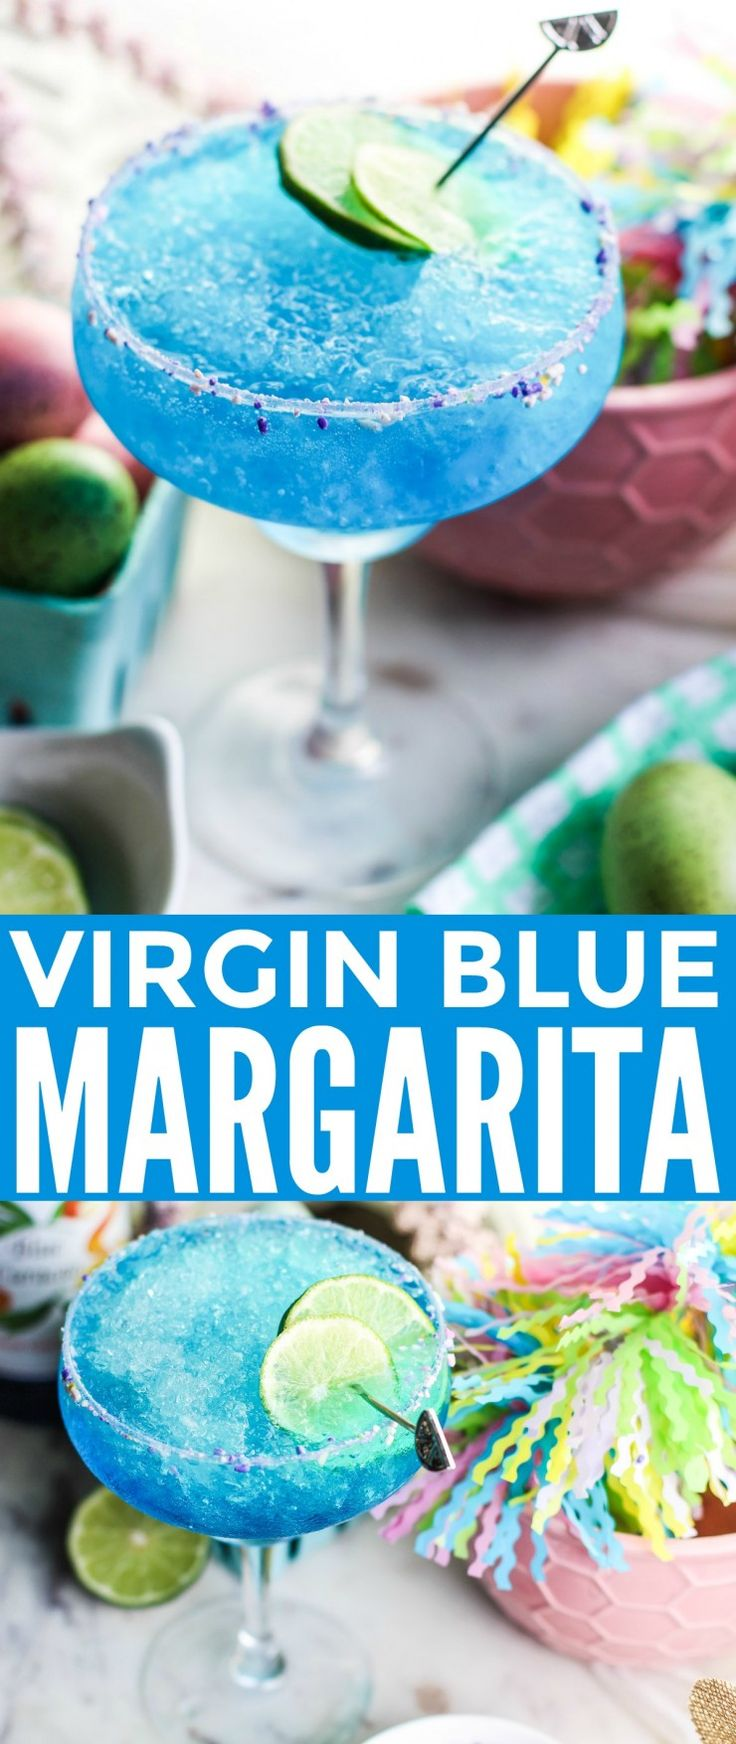 The 25 best alcoholic beverages ideas on pinterest for Cool alcoholic drink names